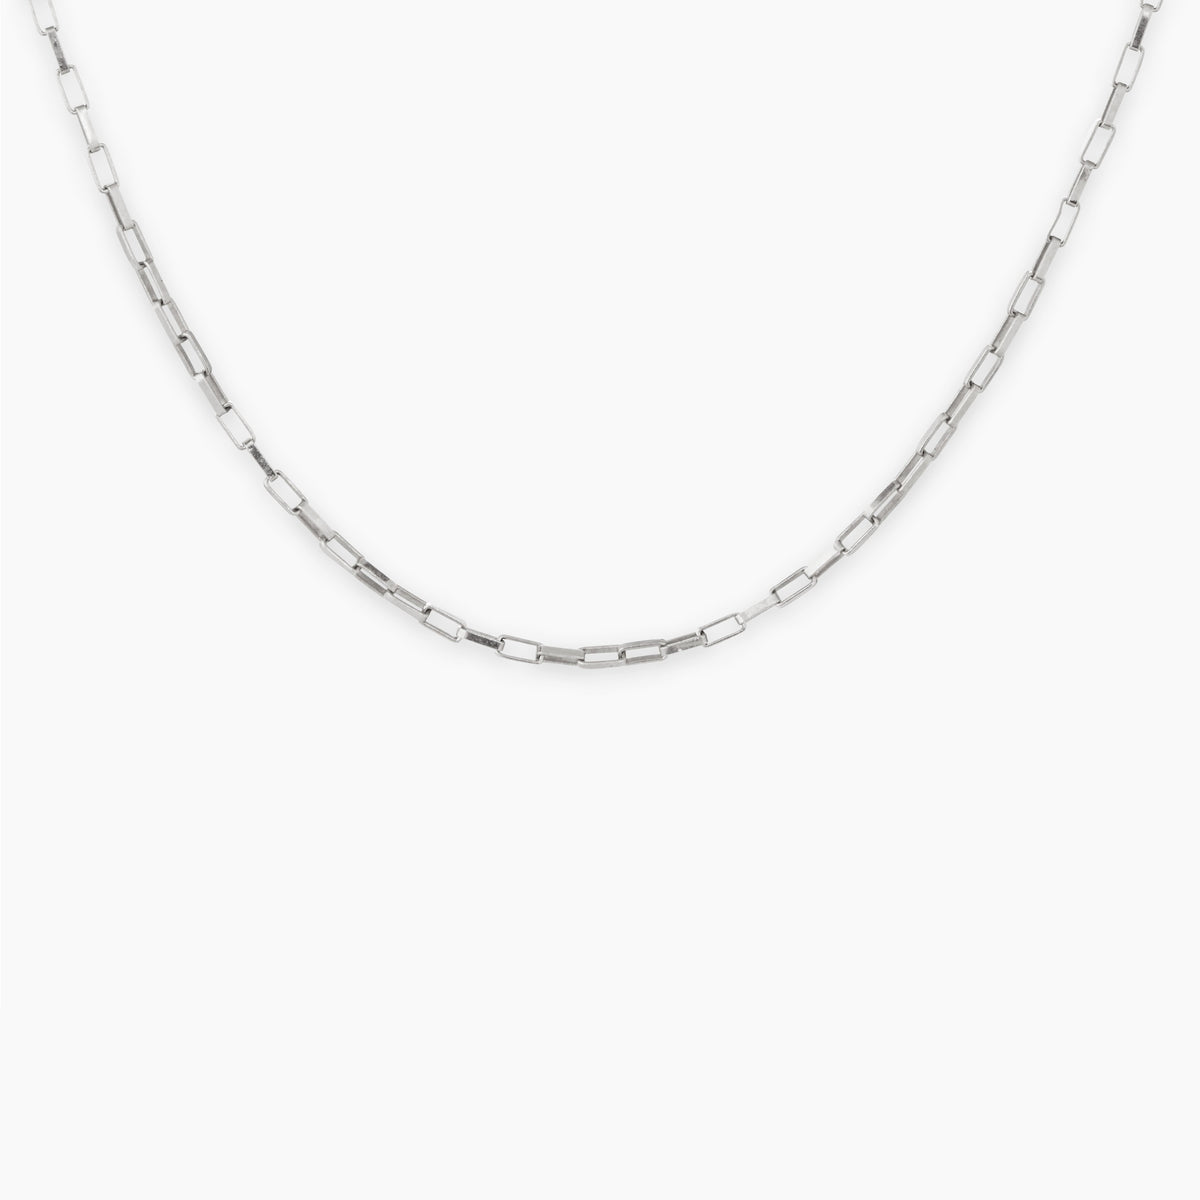 Silver Electric Chain Long